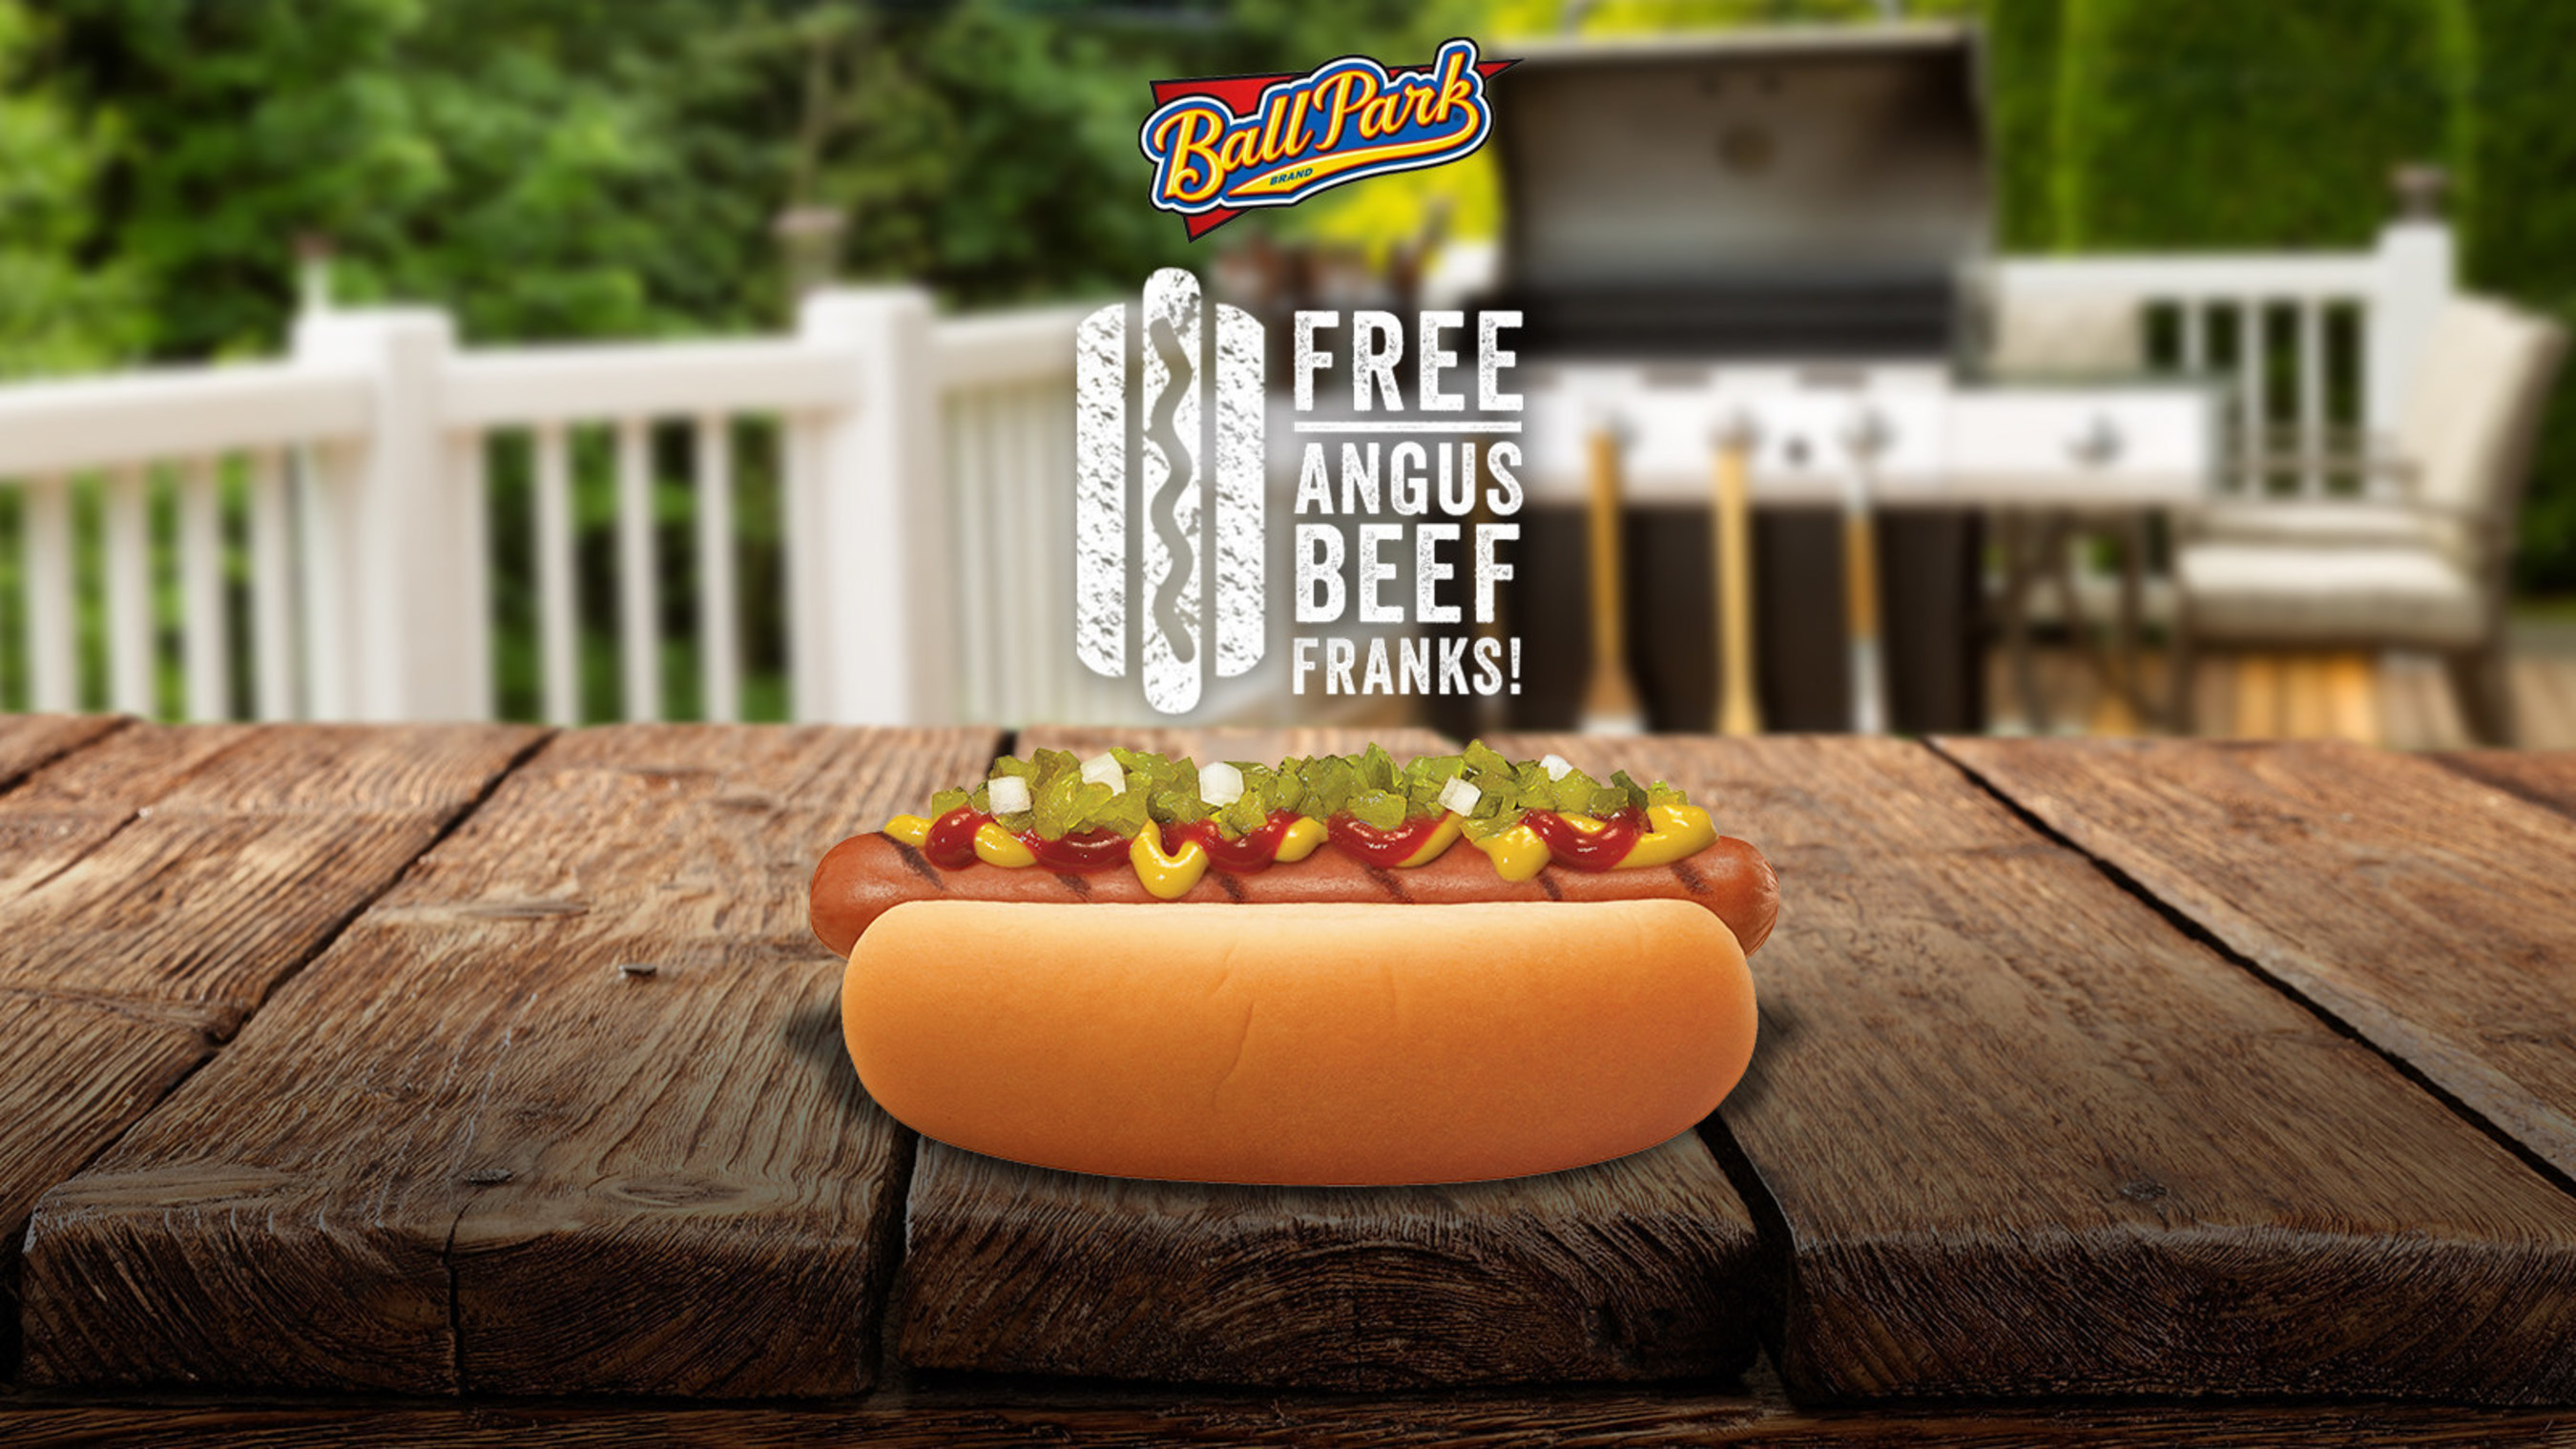 Free Ball Park Angus Beef Franks! Change your name to Angus or Frank on Twitter, follow @BallParkBrand & use #BallParkAngusGiveaway.